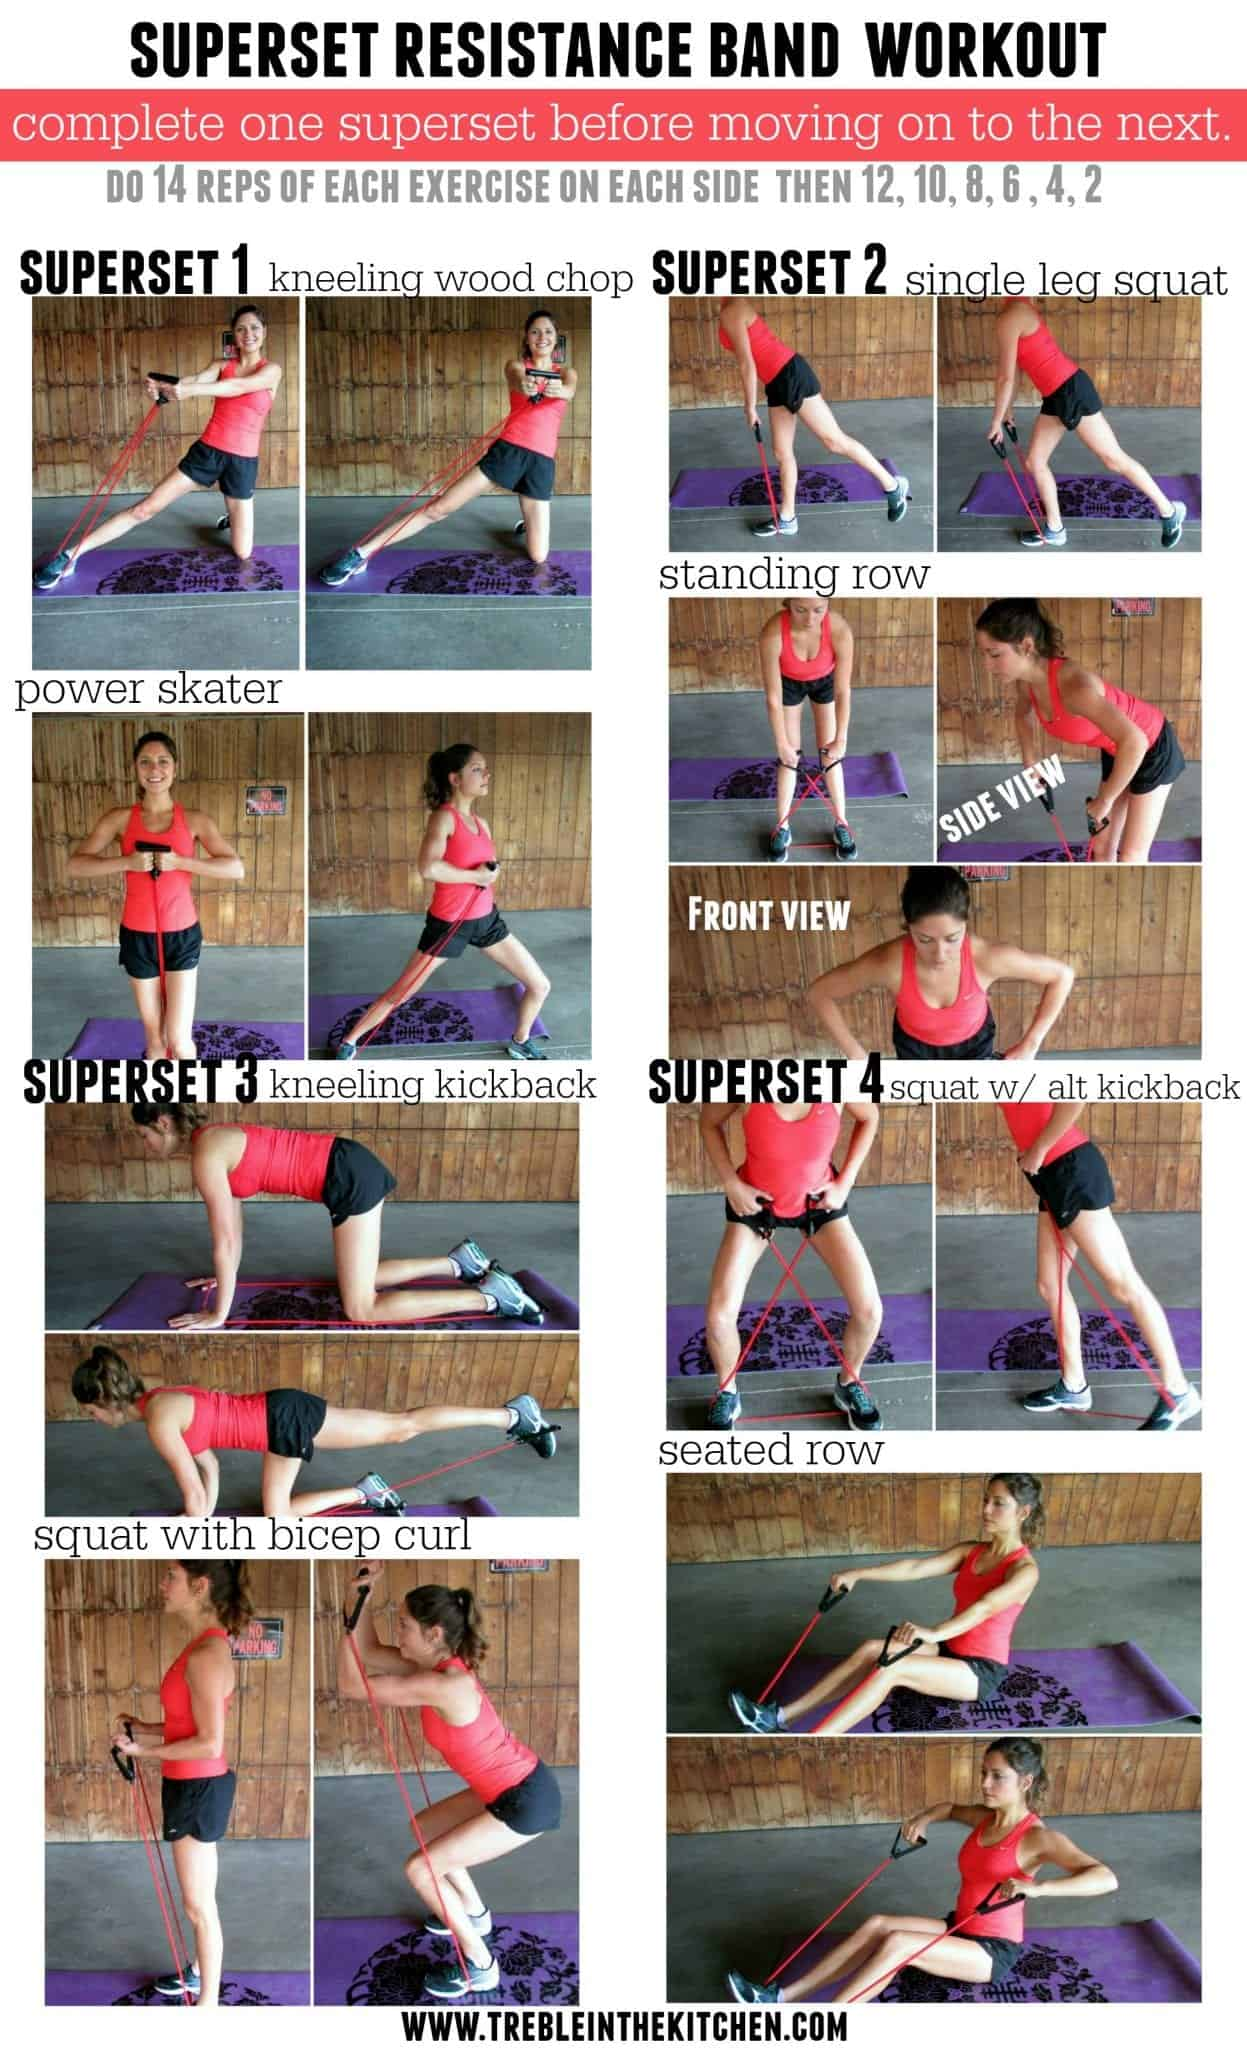 Superset Resistance Band Workout | Treble in the Kitchen